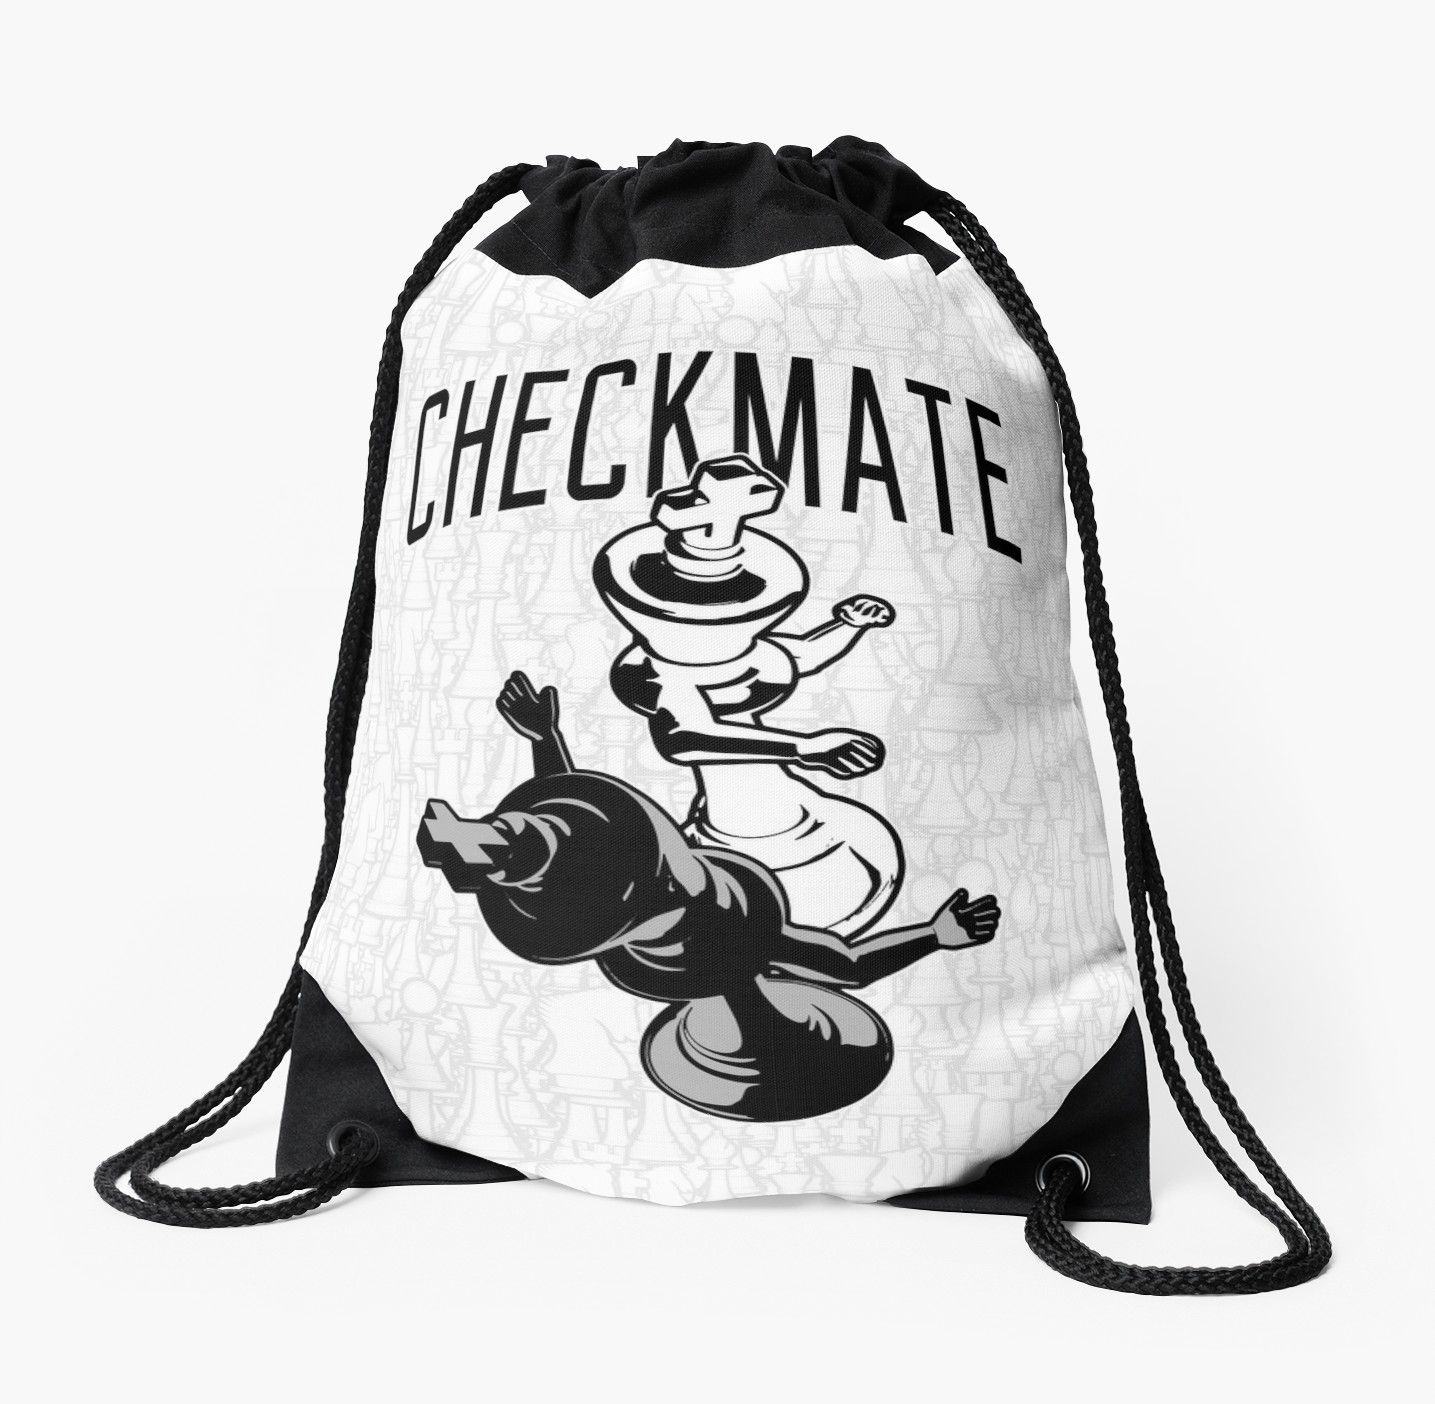 0f45a2083 Buy 'Checkmate Punch Funny Boxing Chess' by GrandeDuc as a T-Shirt,  drawstring bag chess, king, checkmate, knockout, boxing, fighter, fight,  punch, boxer, ...